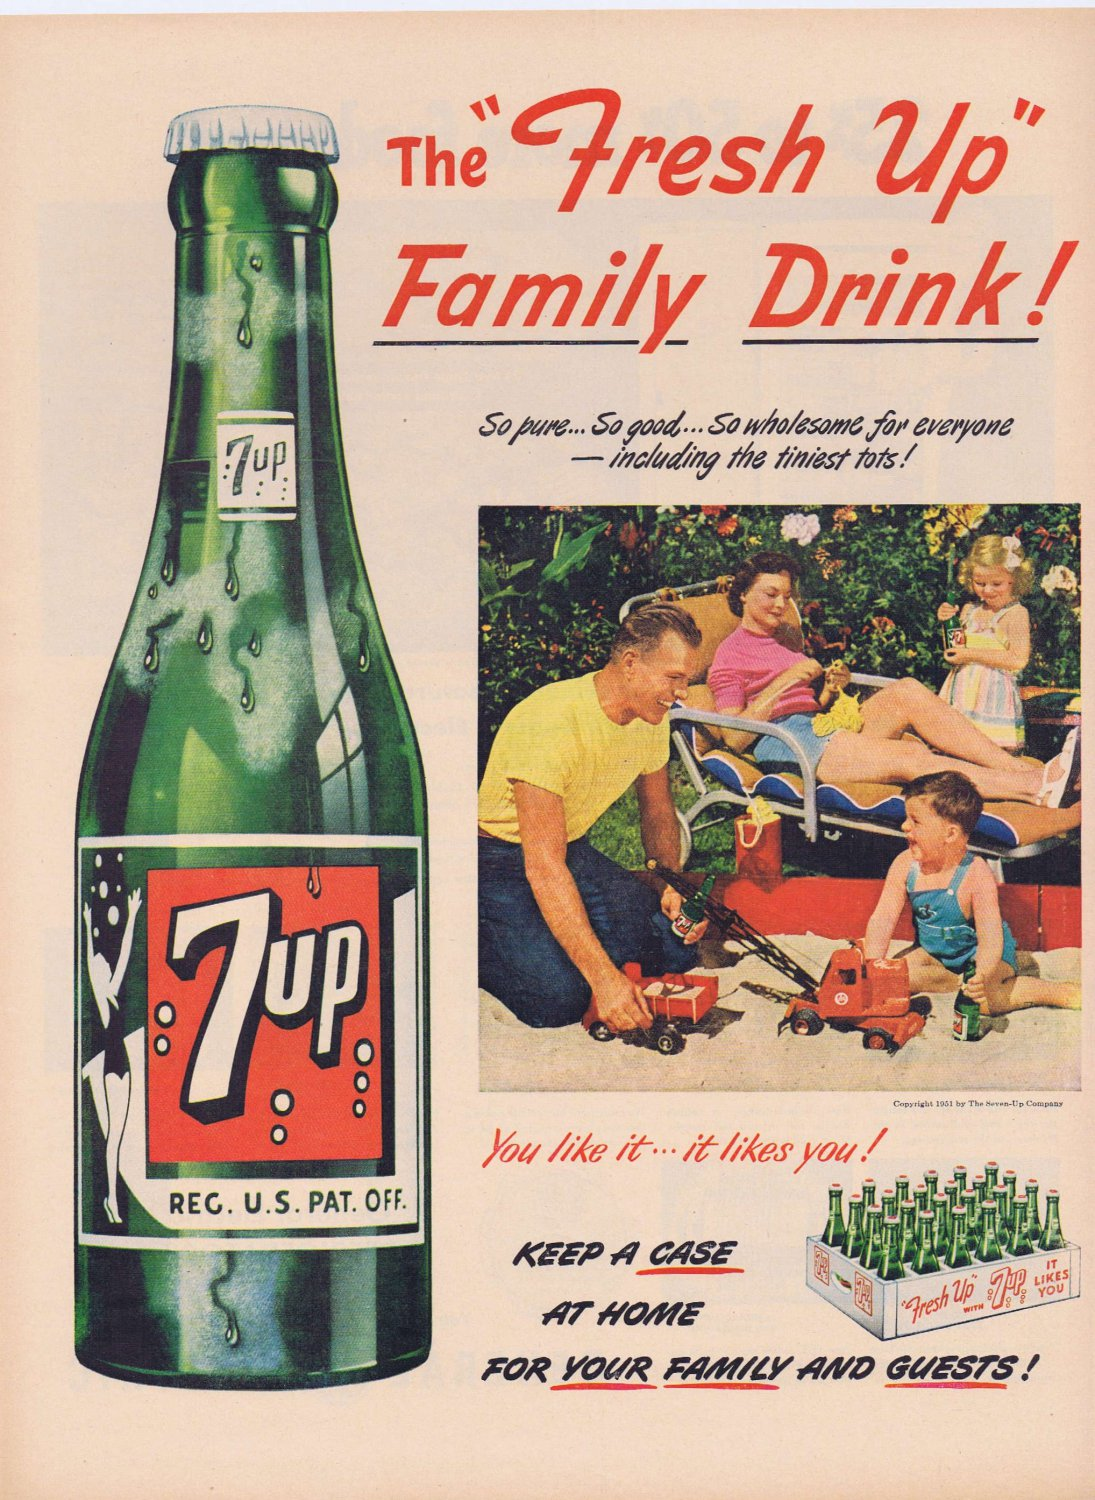 1951 7up Soft Drink Original Vintage Advertisement with Family Fun